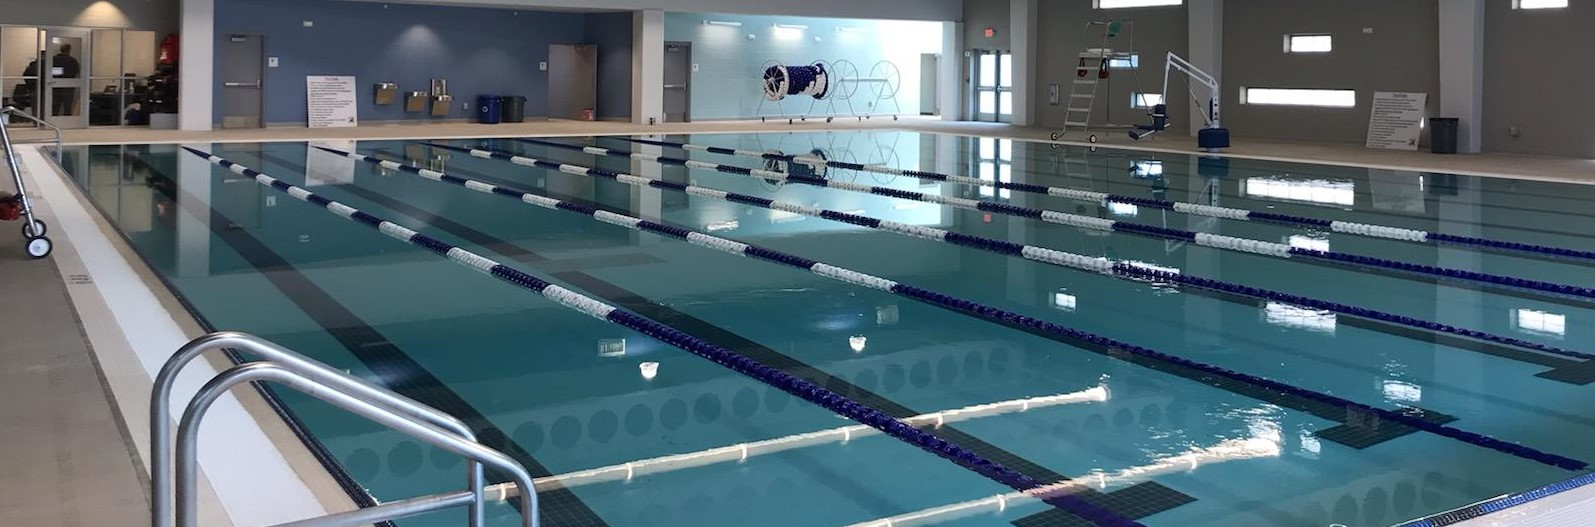 Indoor pools city of albuquerque - Valley center swimming pool hours ...